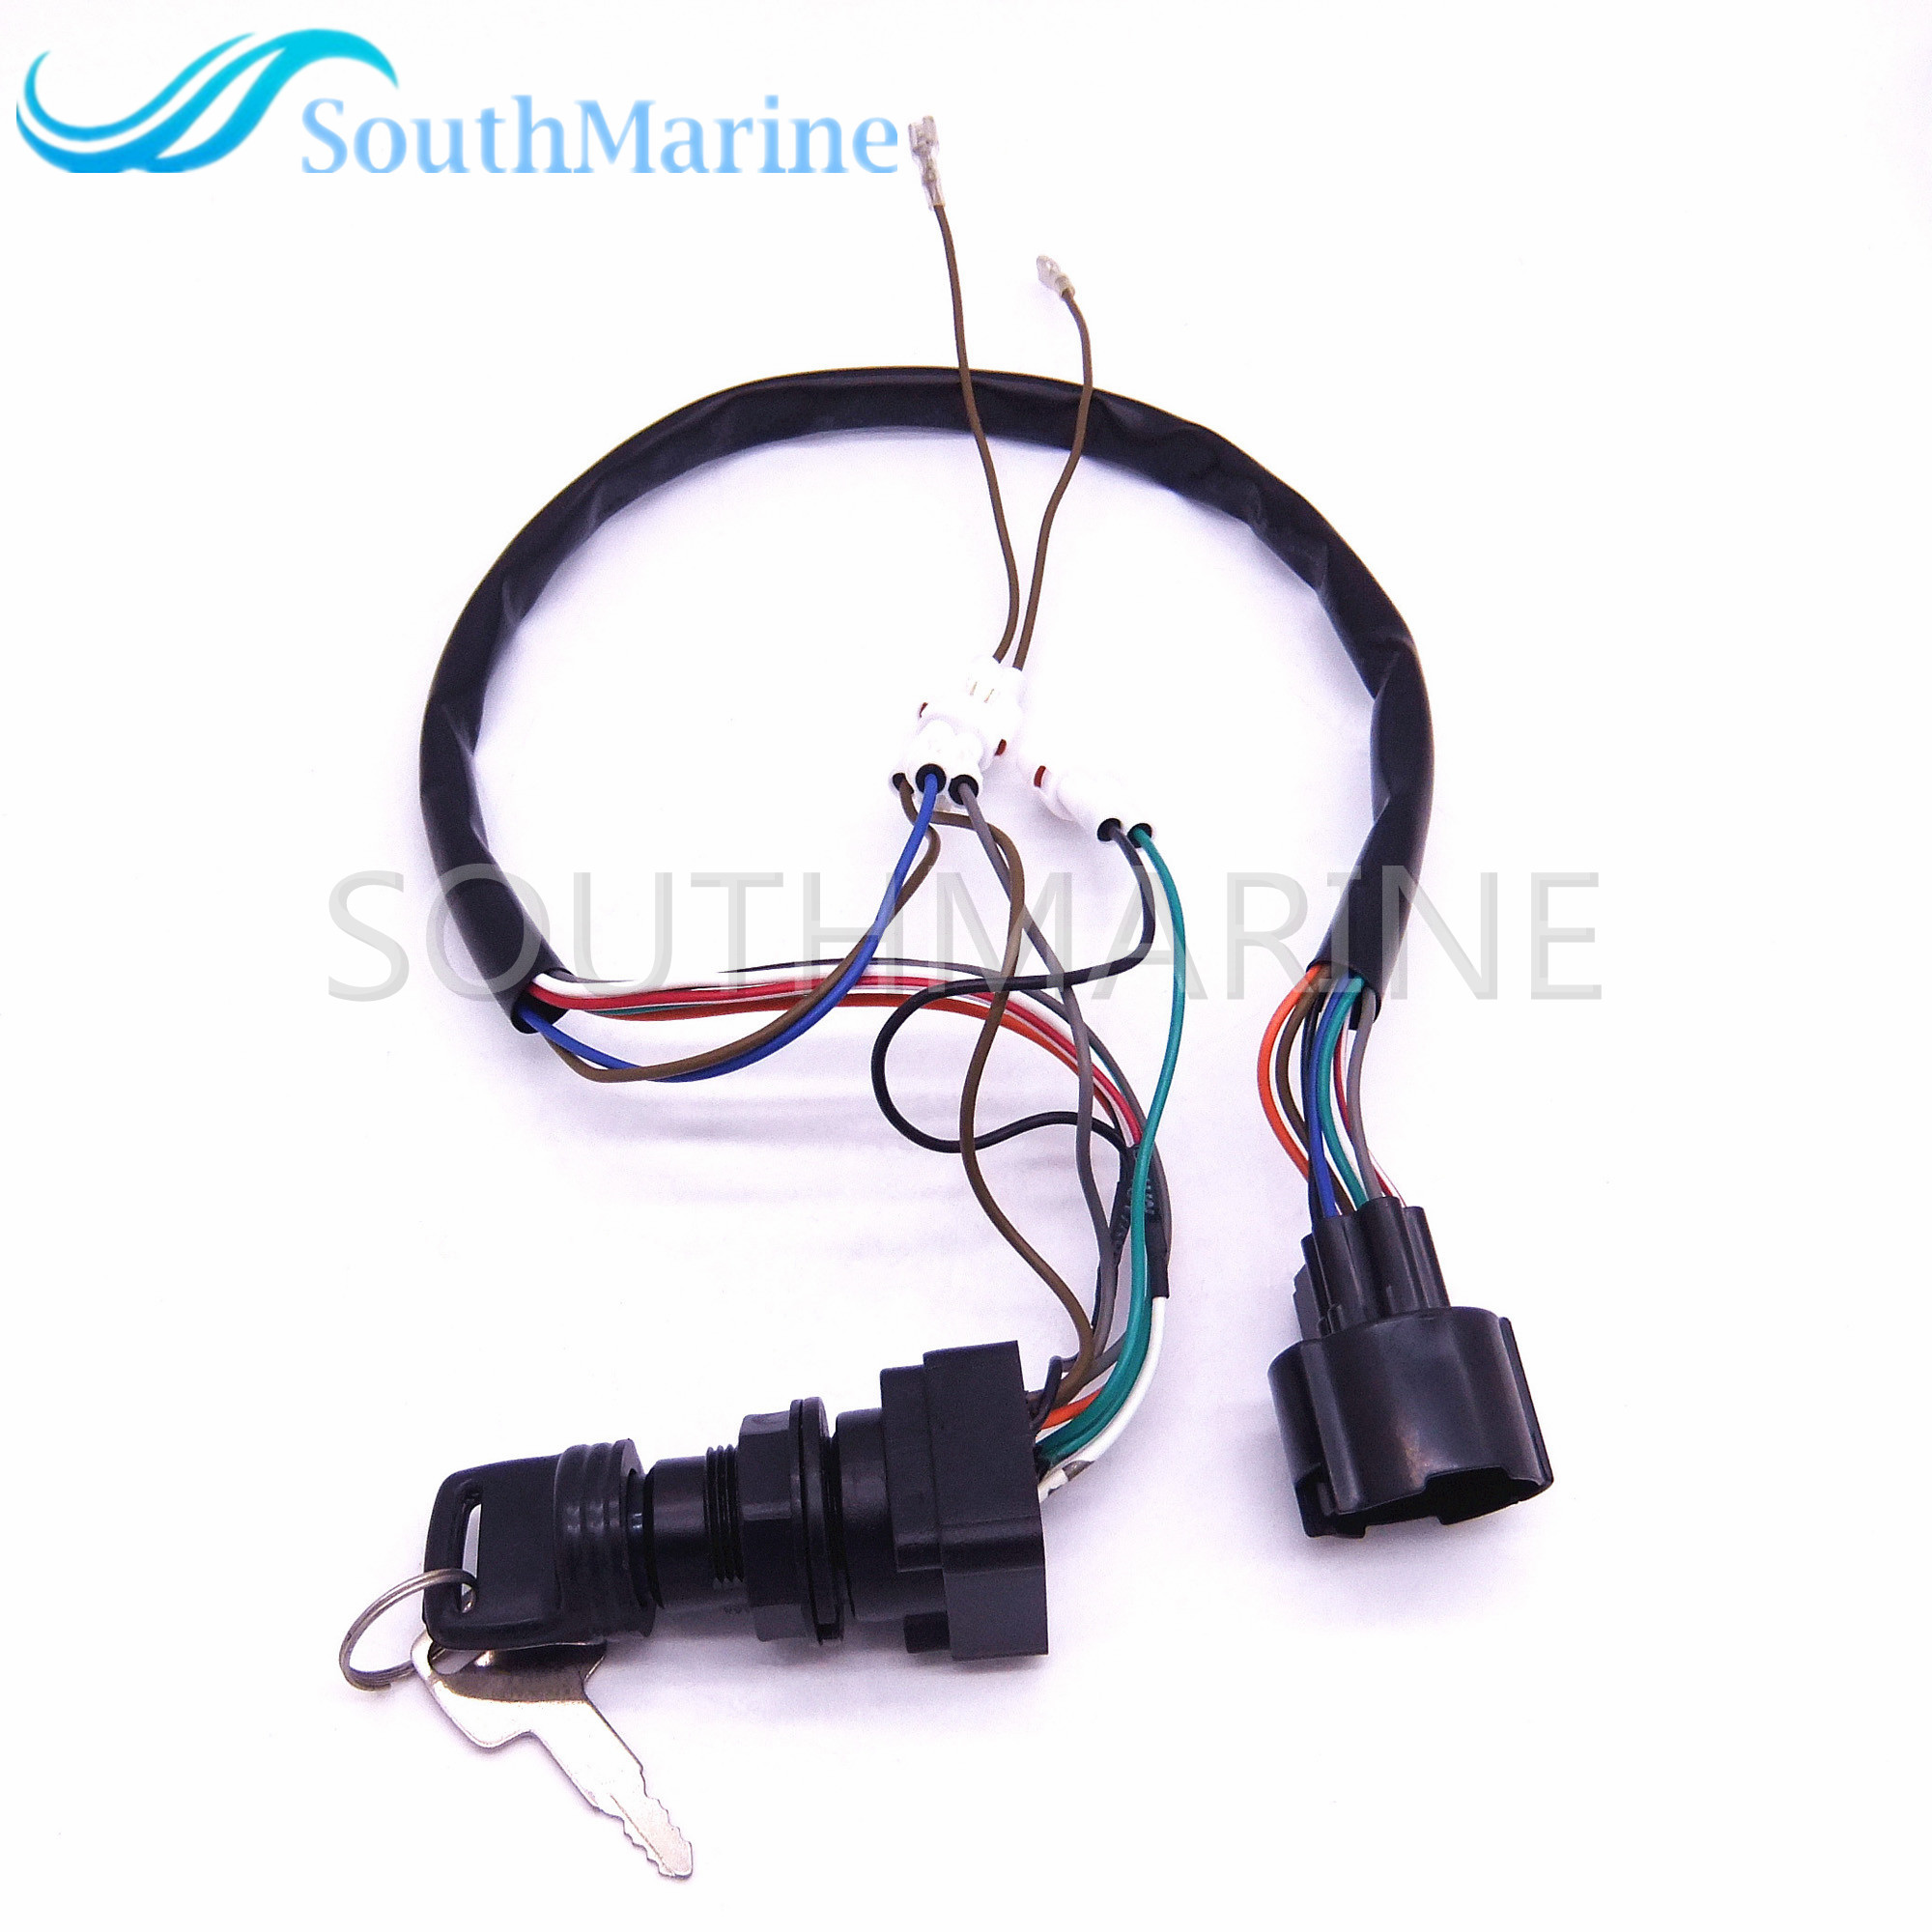 37110-93J01 37110-93J00 Boat Motor Ignition switch assembly For Suzuki Outboard Motor ,Free Shipping